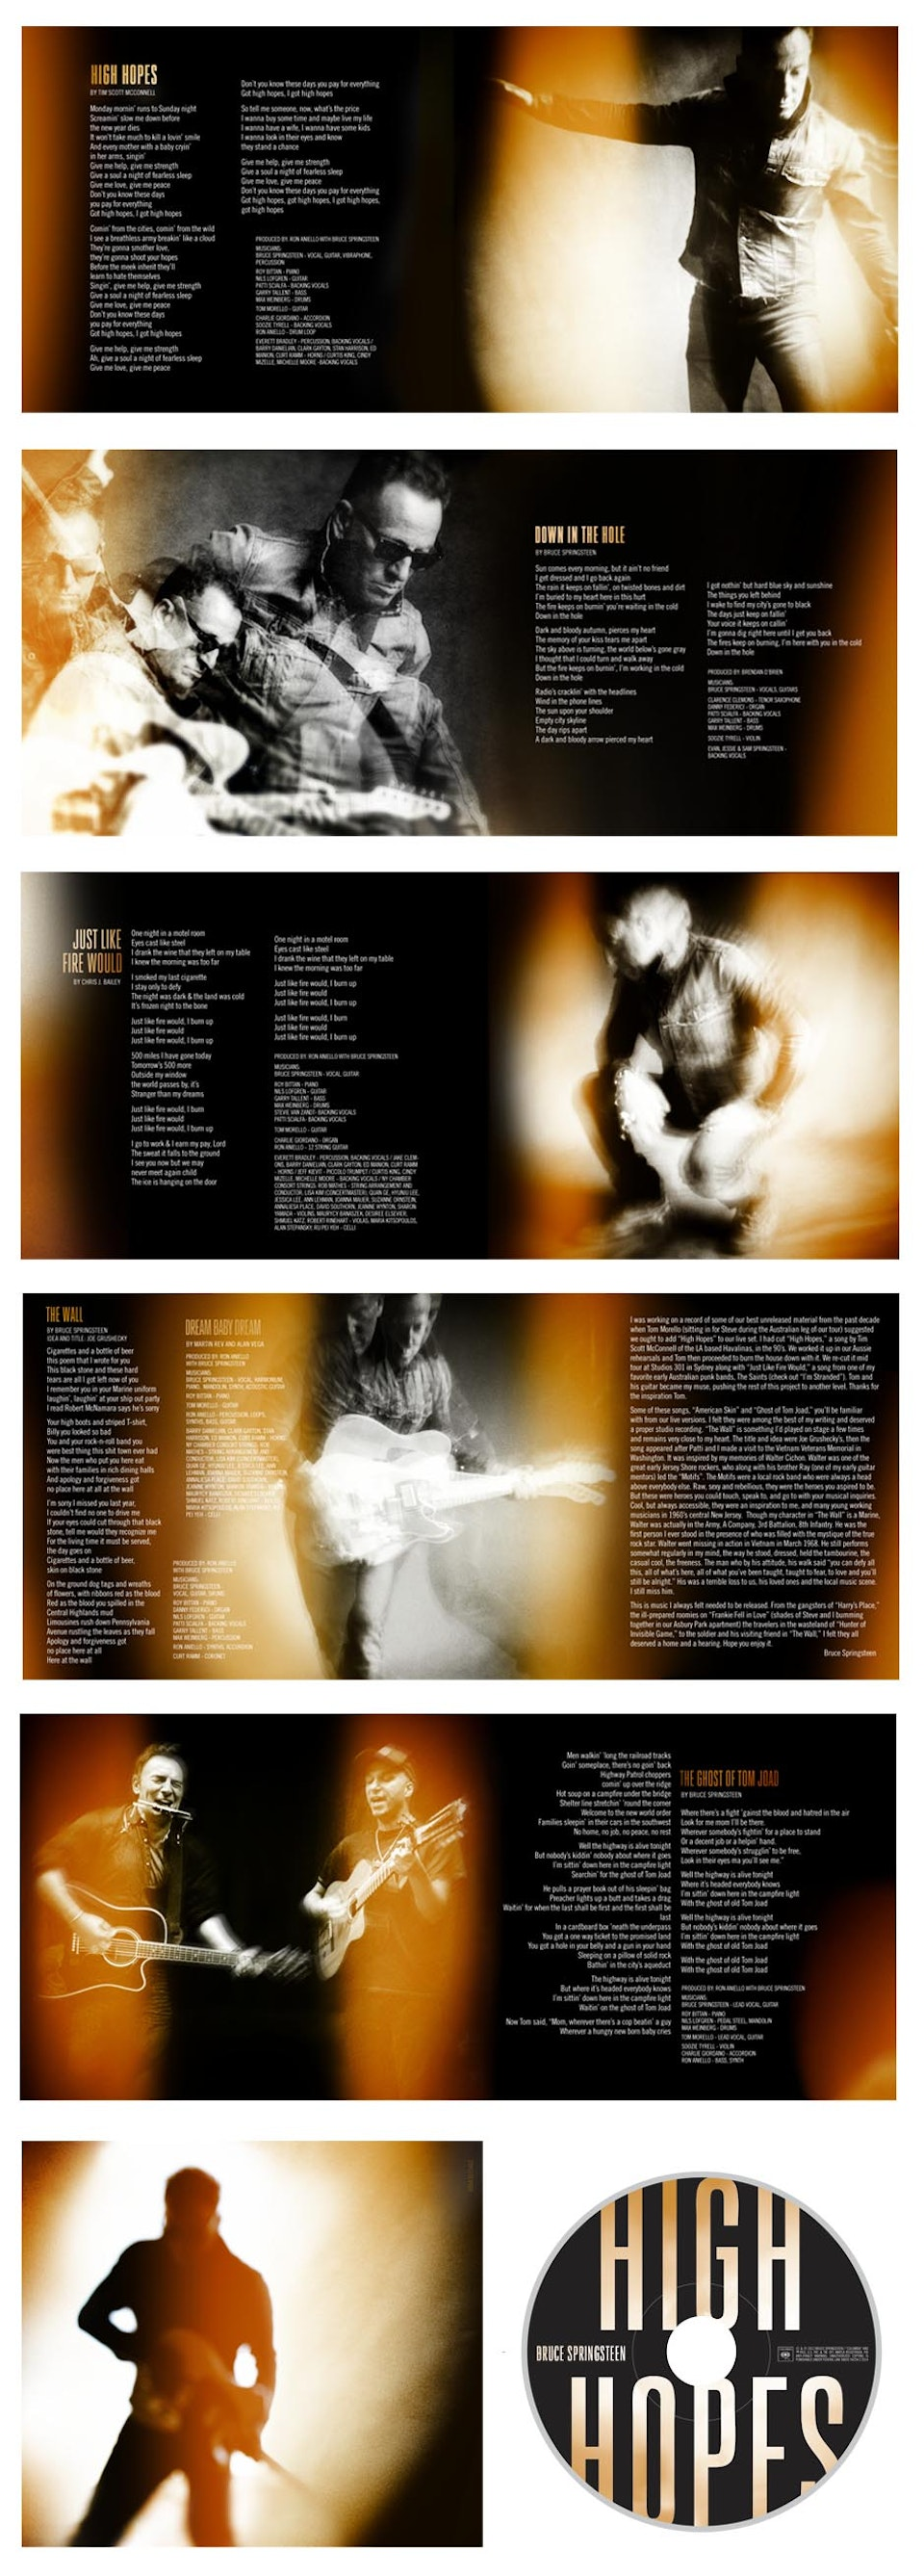 High Hopes - High Hopes booklet and CD